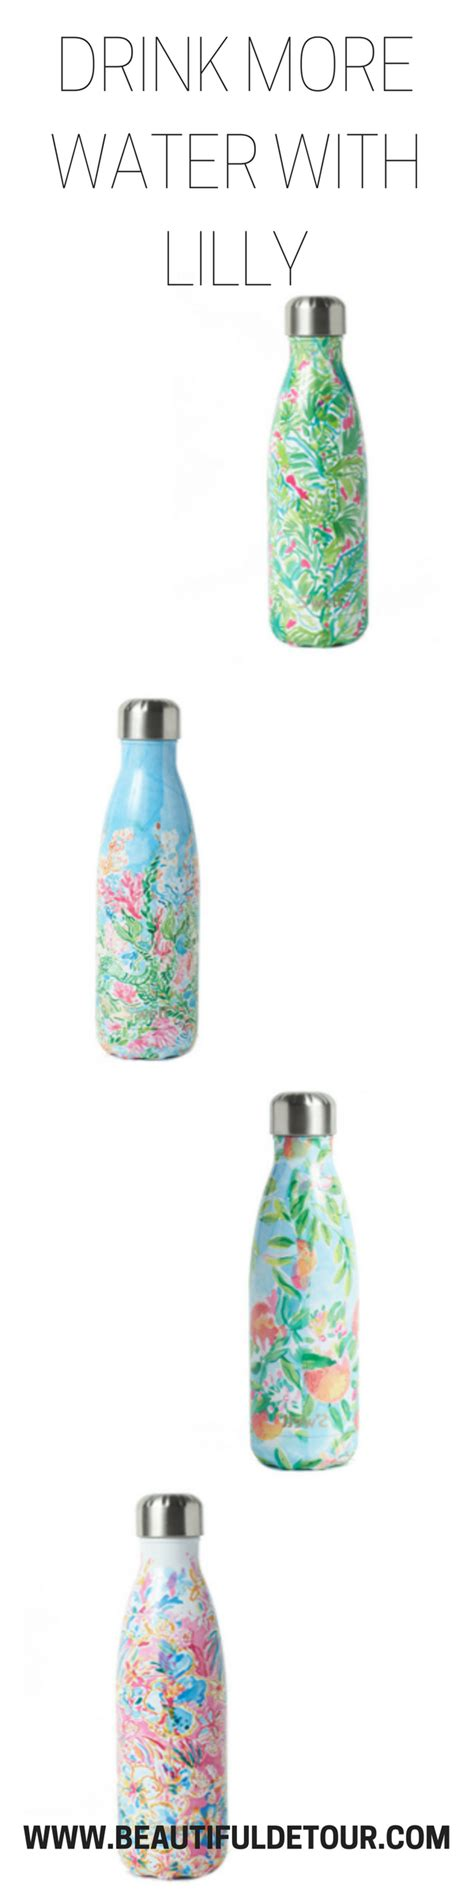 lilly pulitzer swell bottle starbucks tone it up tuesday starbucks lilly pulitzer swell